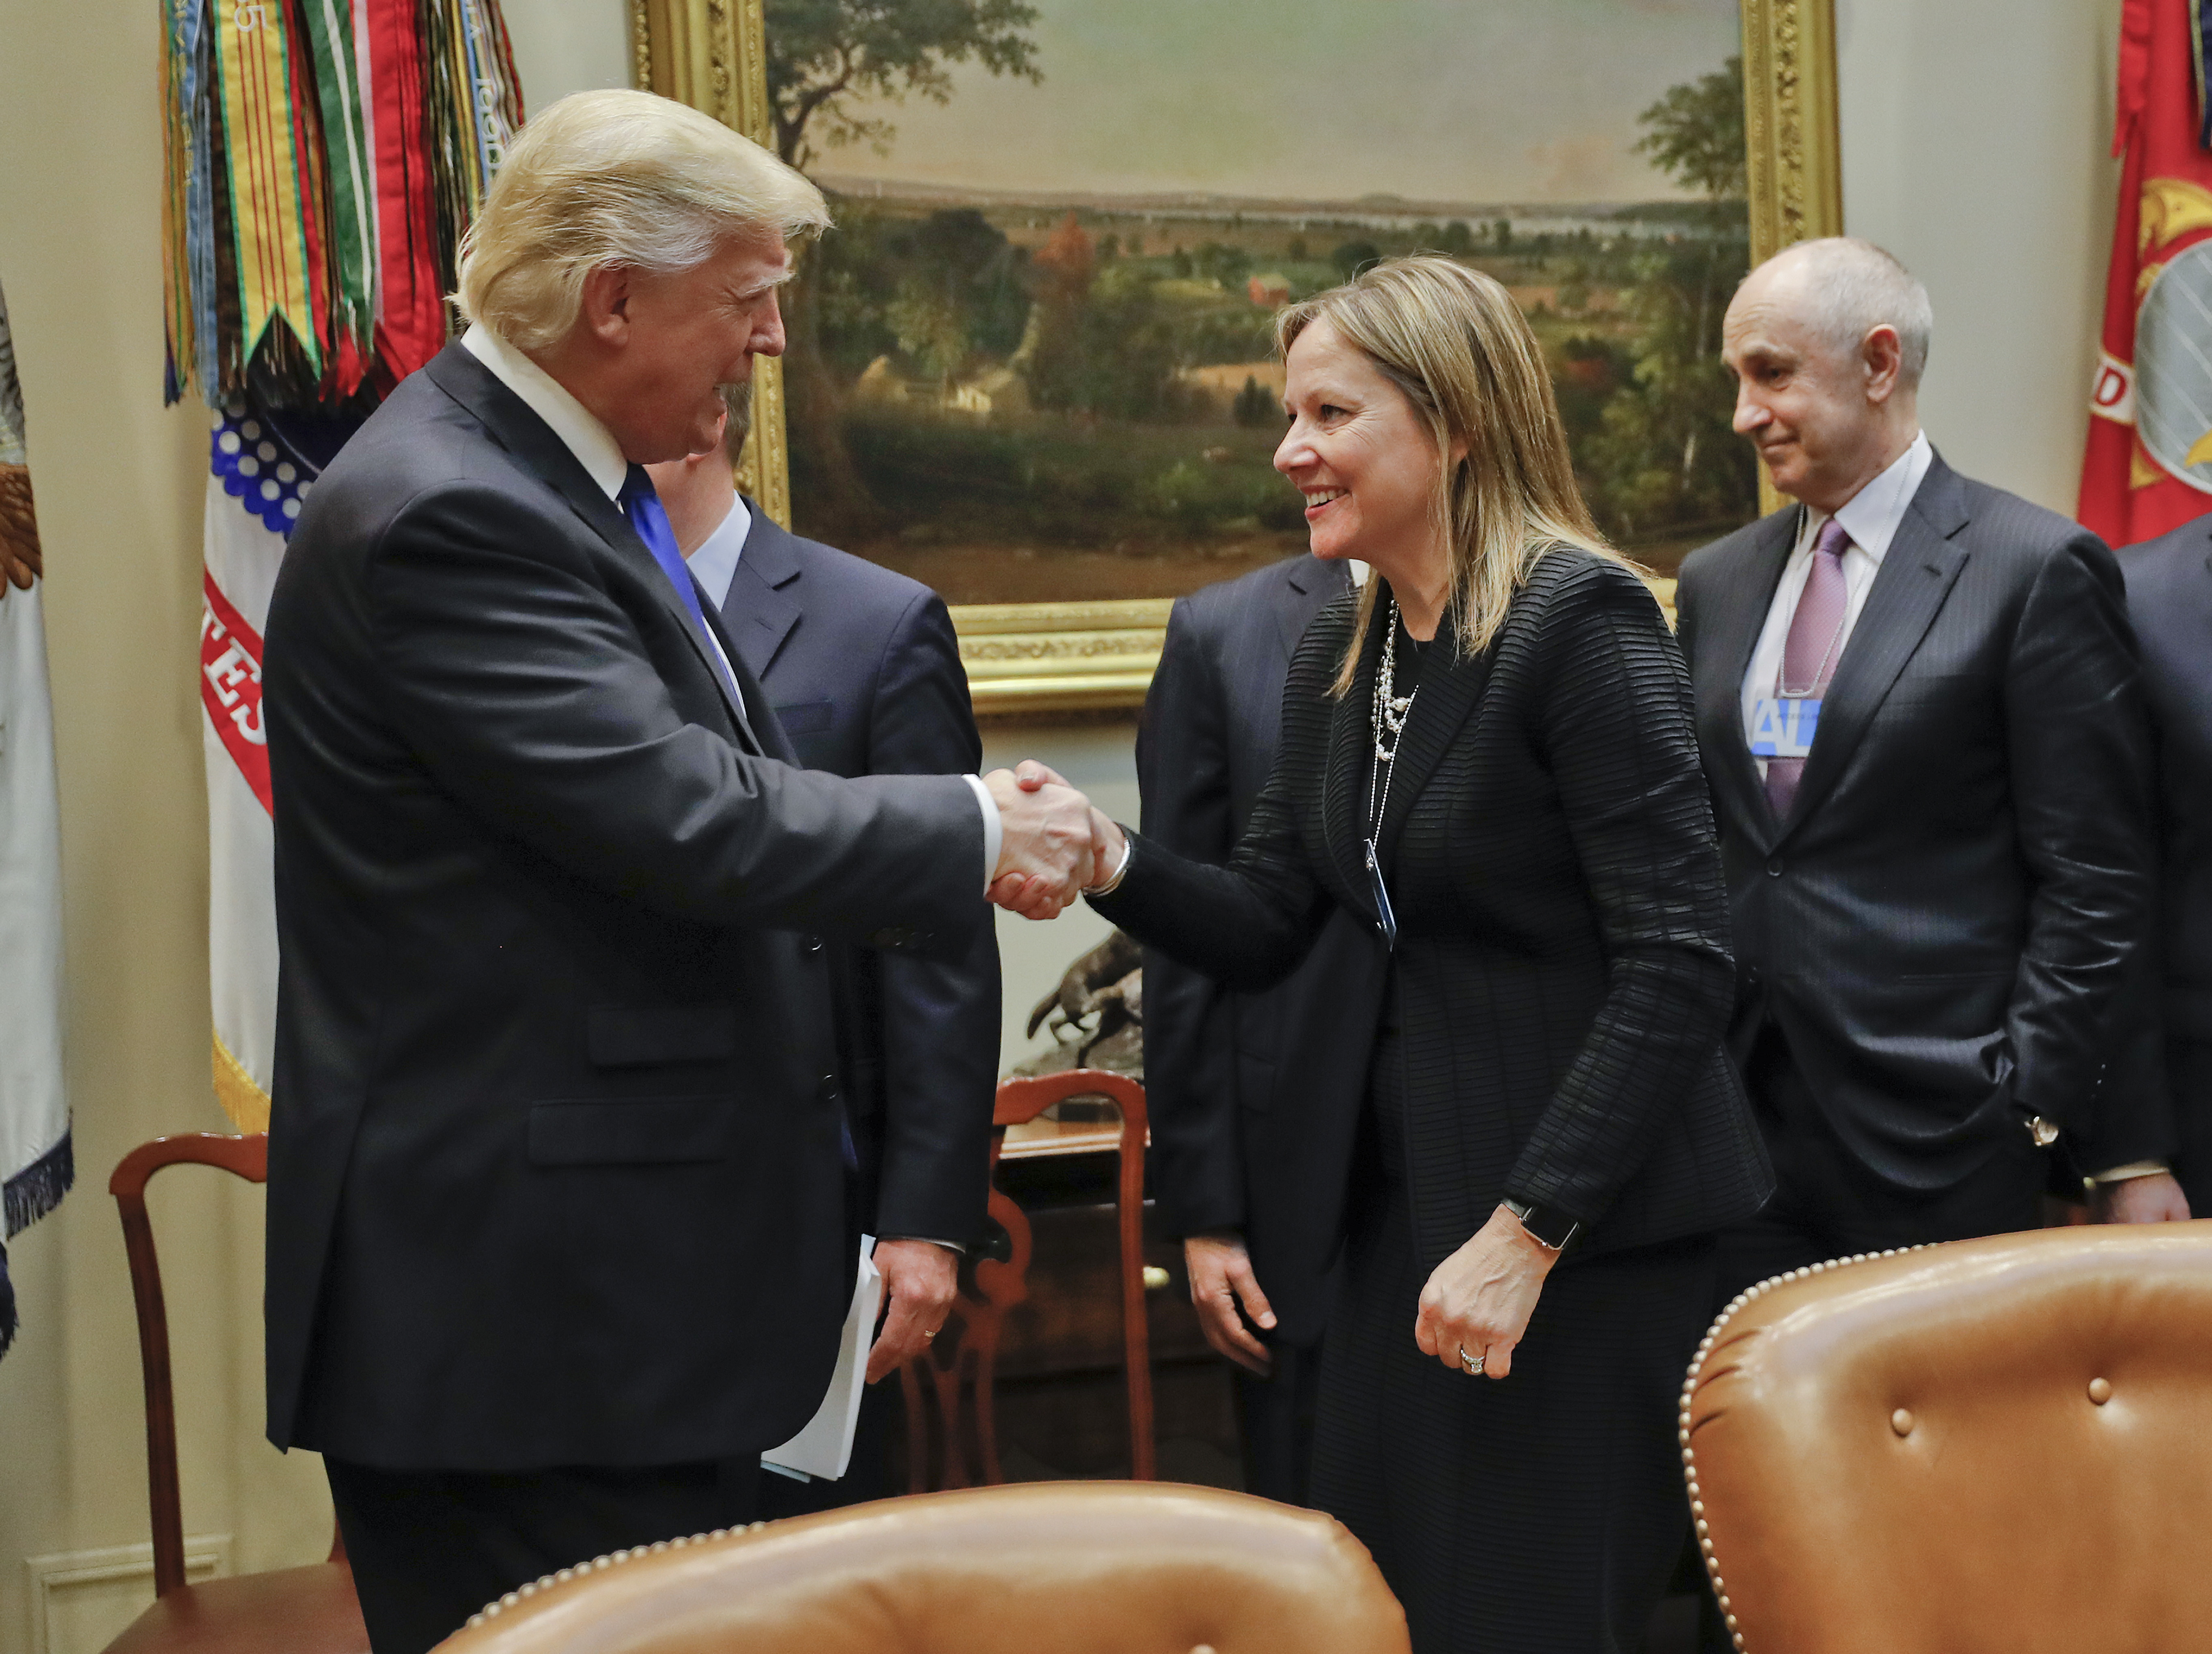 President Donald Trump greets GM CEO Mary Barra as he hosts a breakfast with automobile leaders in the Roosevelt Room of the White House in Washington on Jan. 24, 2017. (AP Photo/Pablo Martinez Monsivais)